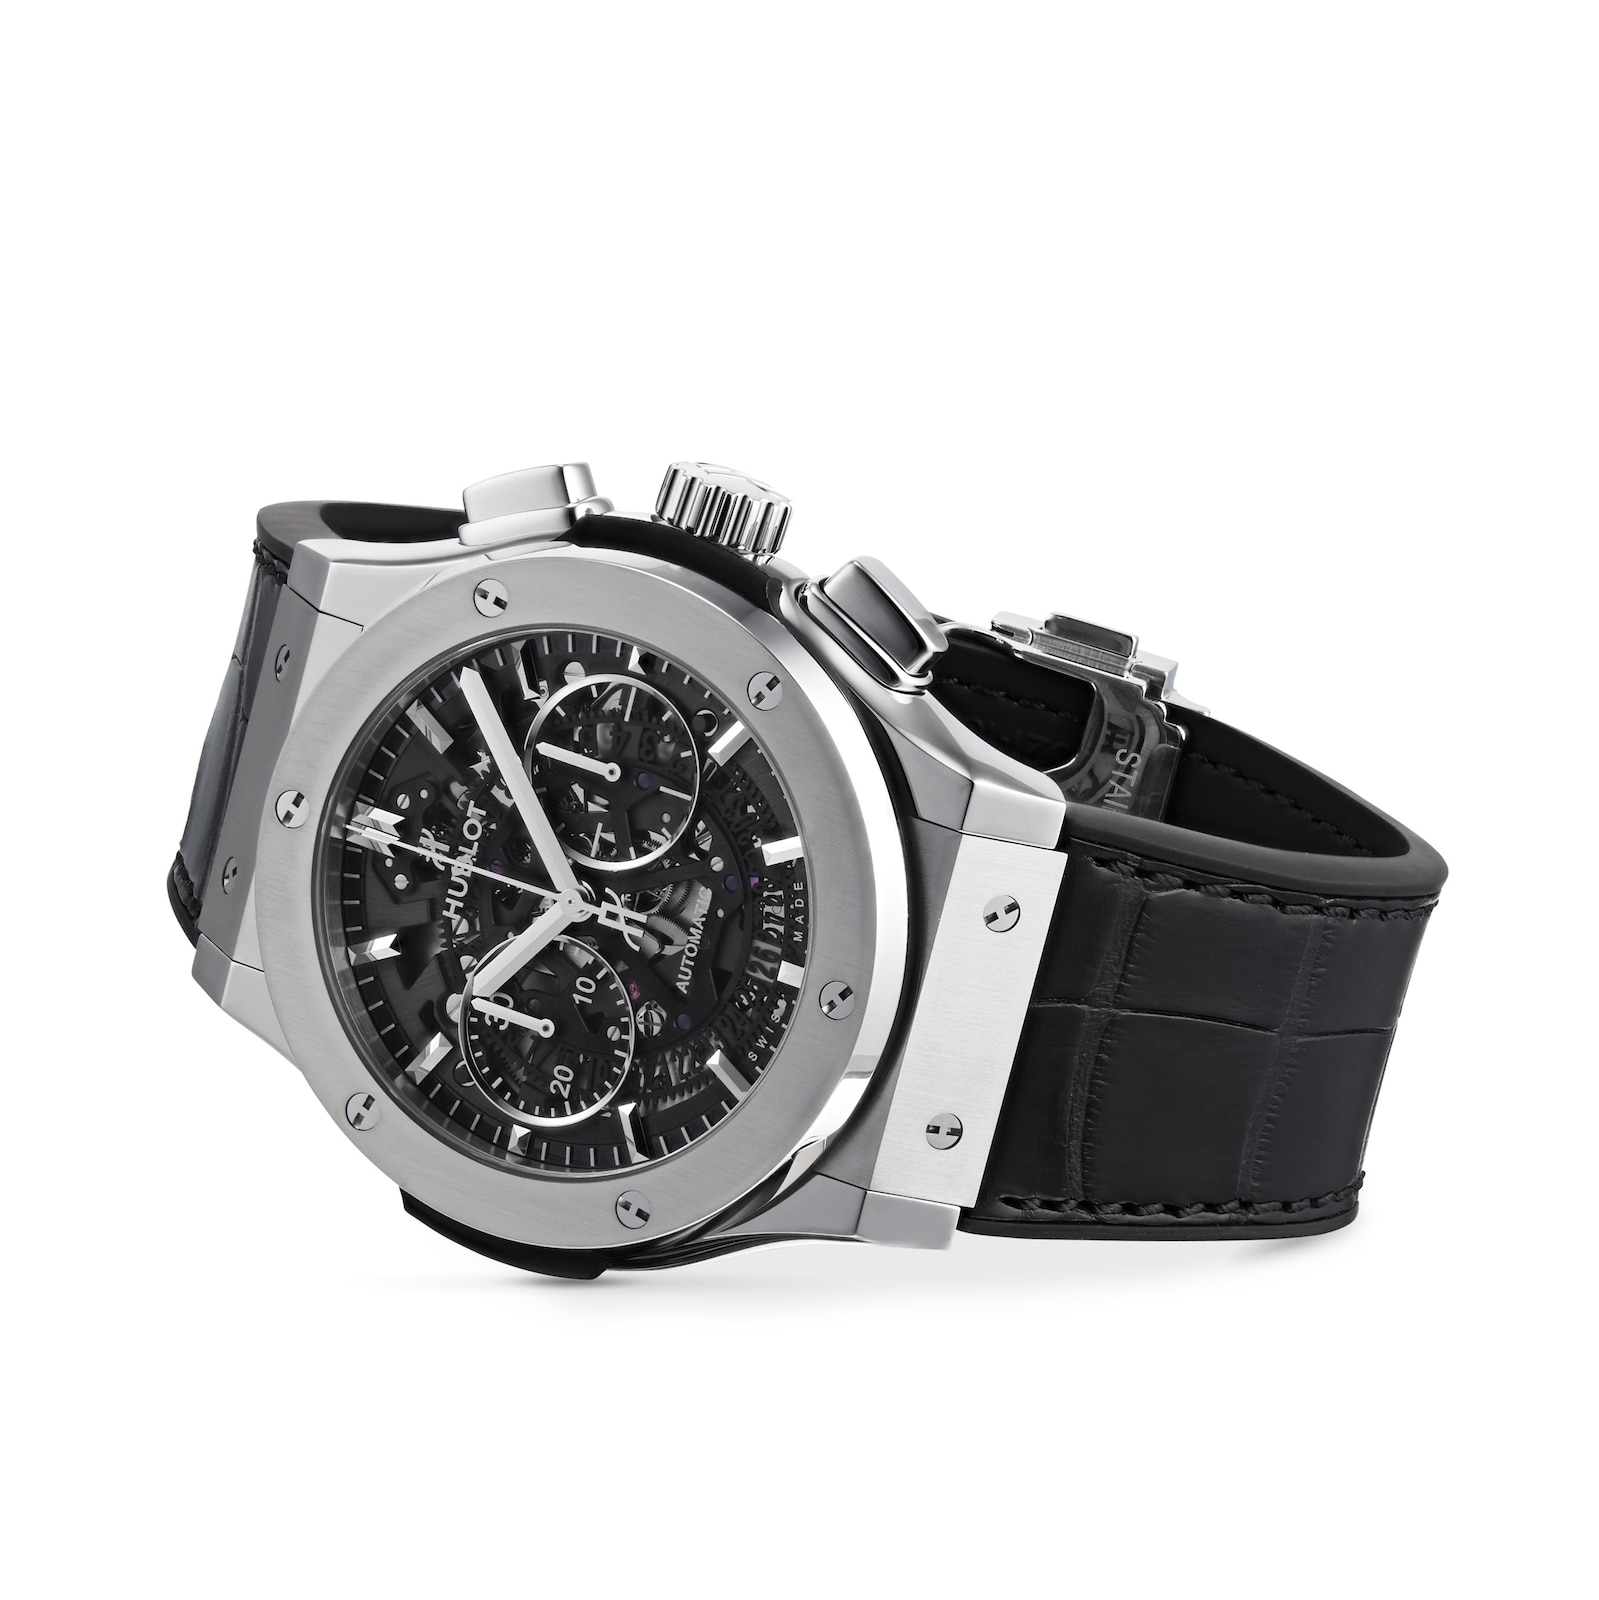 Hublot Hublot Classic Fusion Aerofusion Titanium 45mm Mens Watch